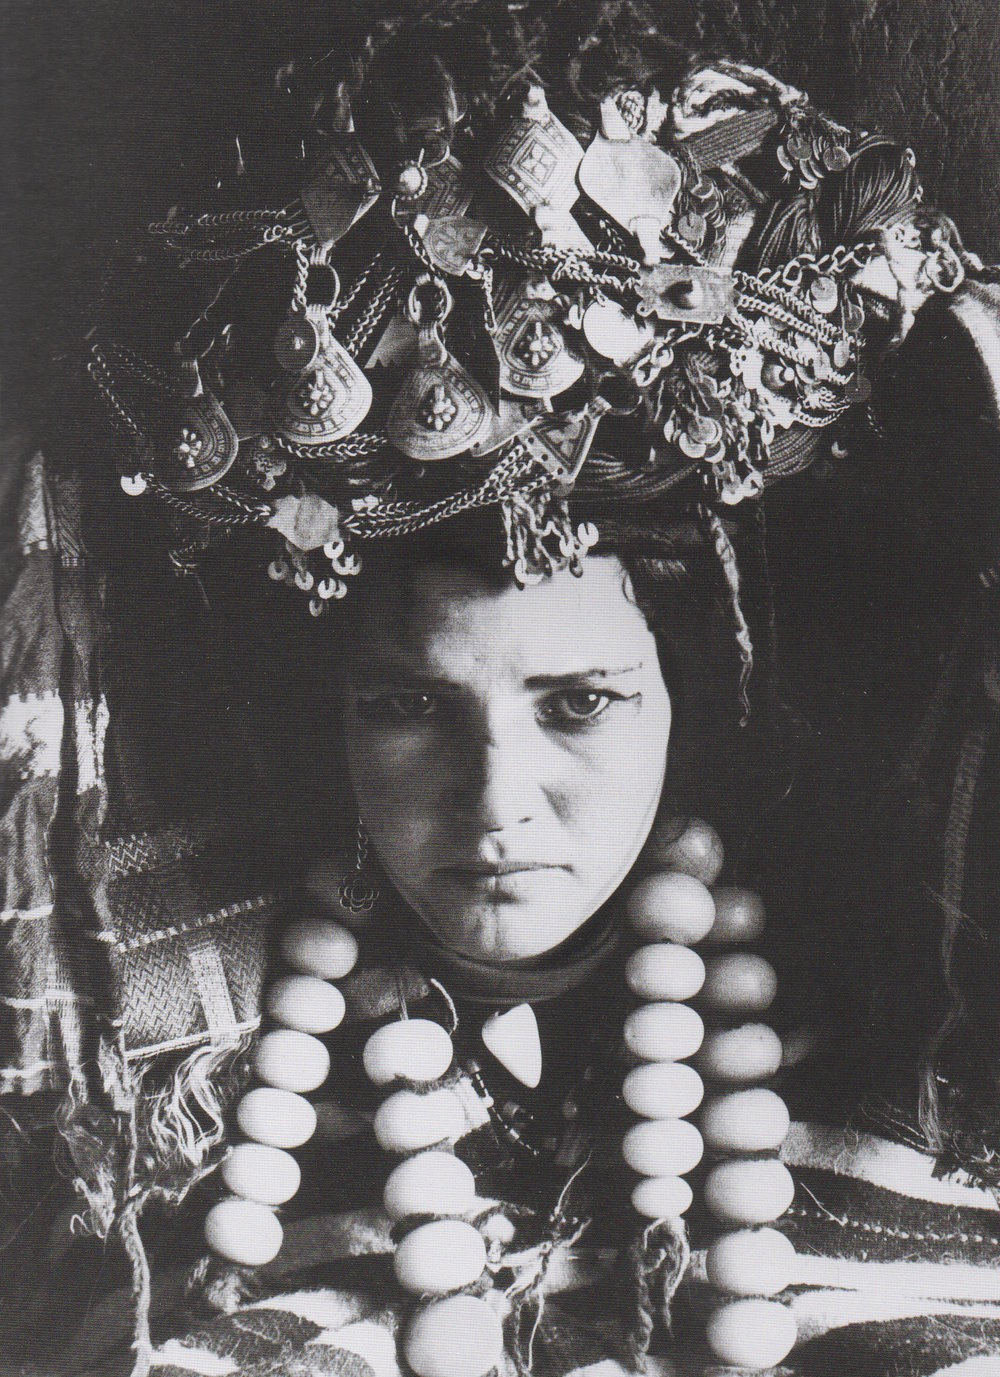 Berber women of morocco - ayt yazza bride.jpeg